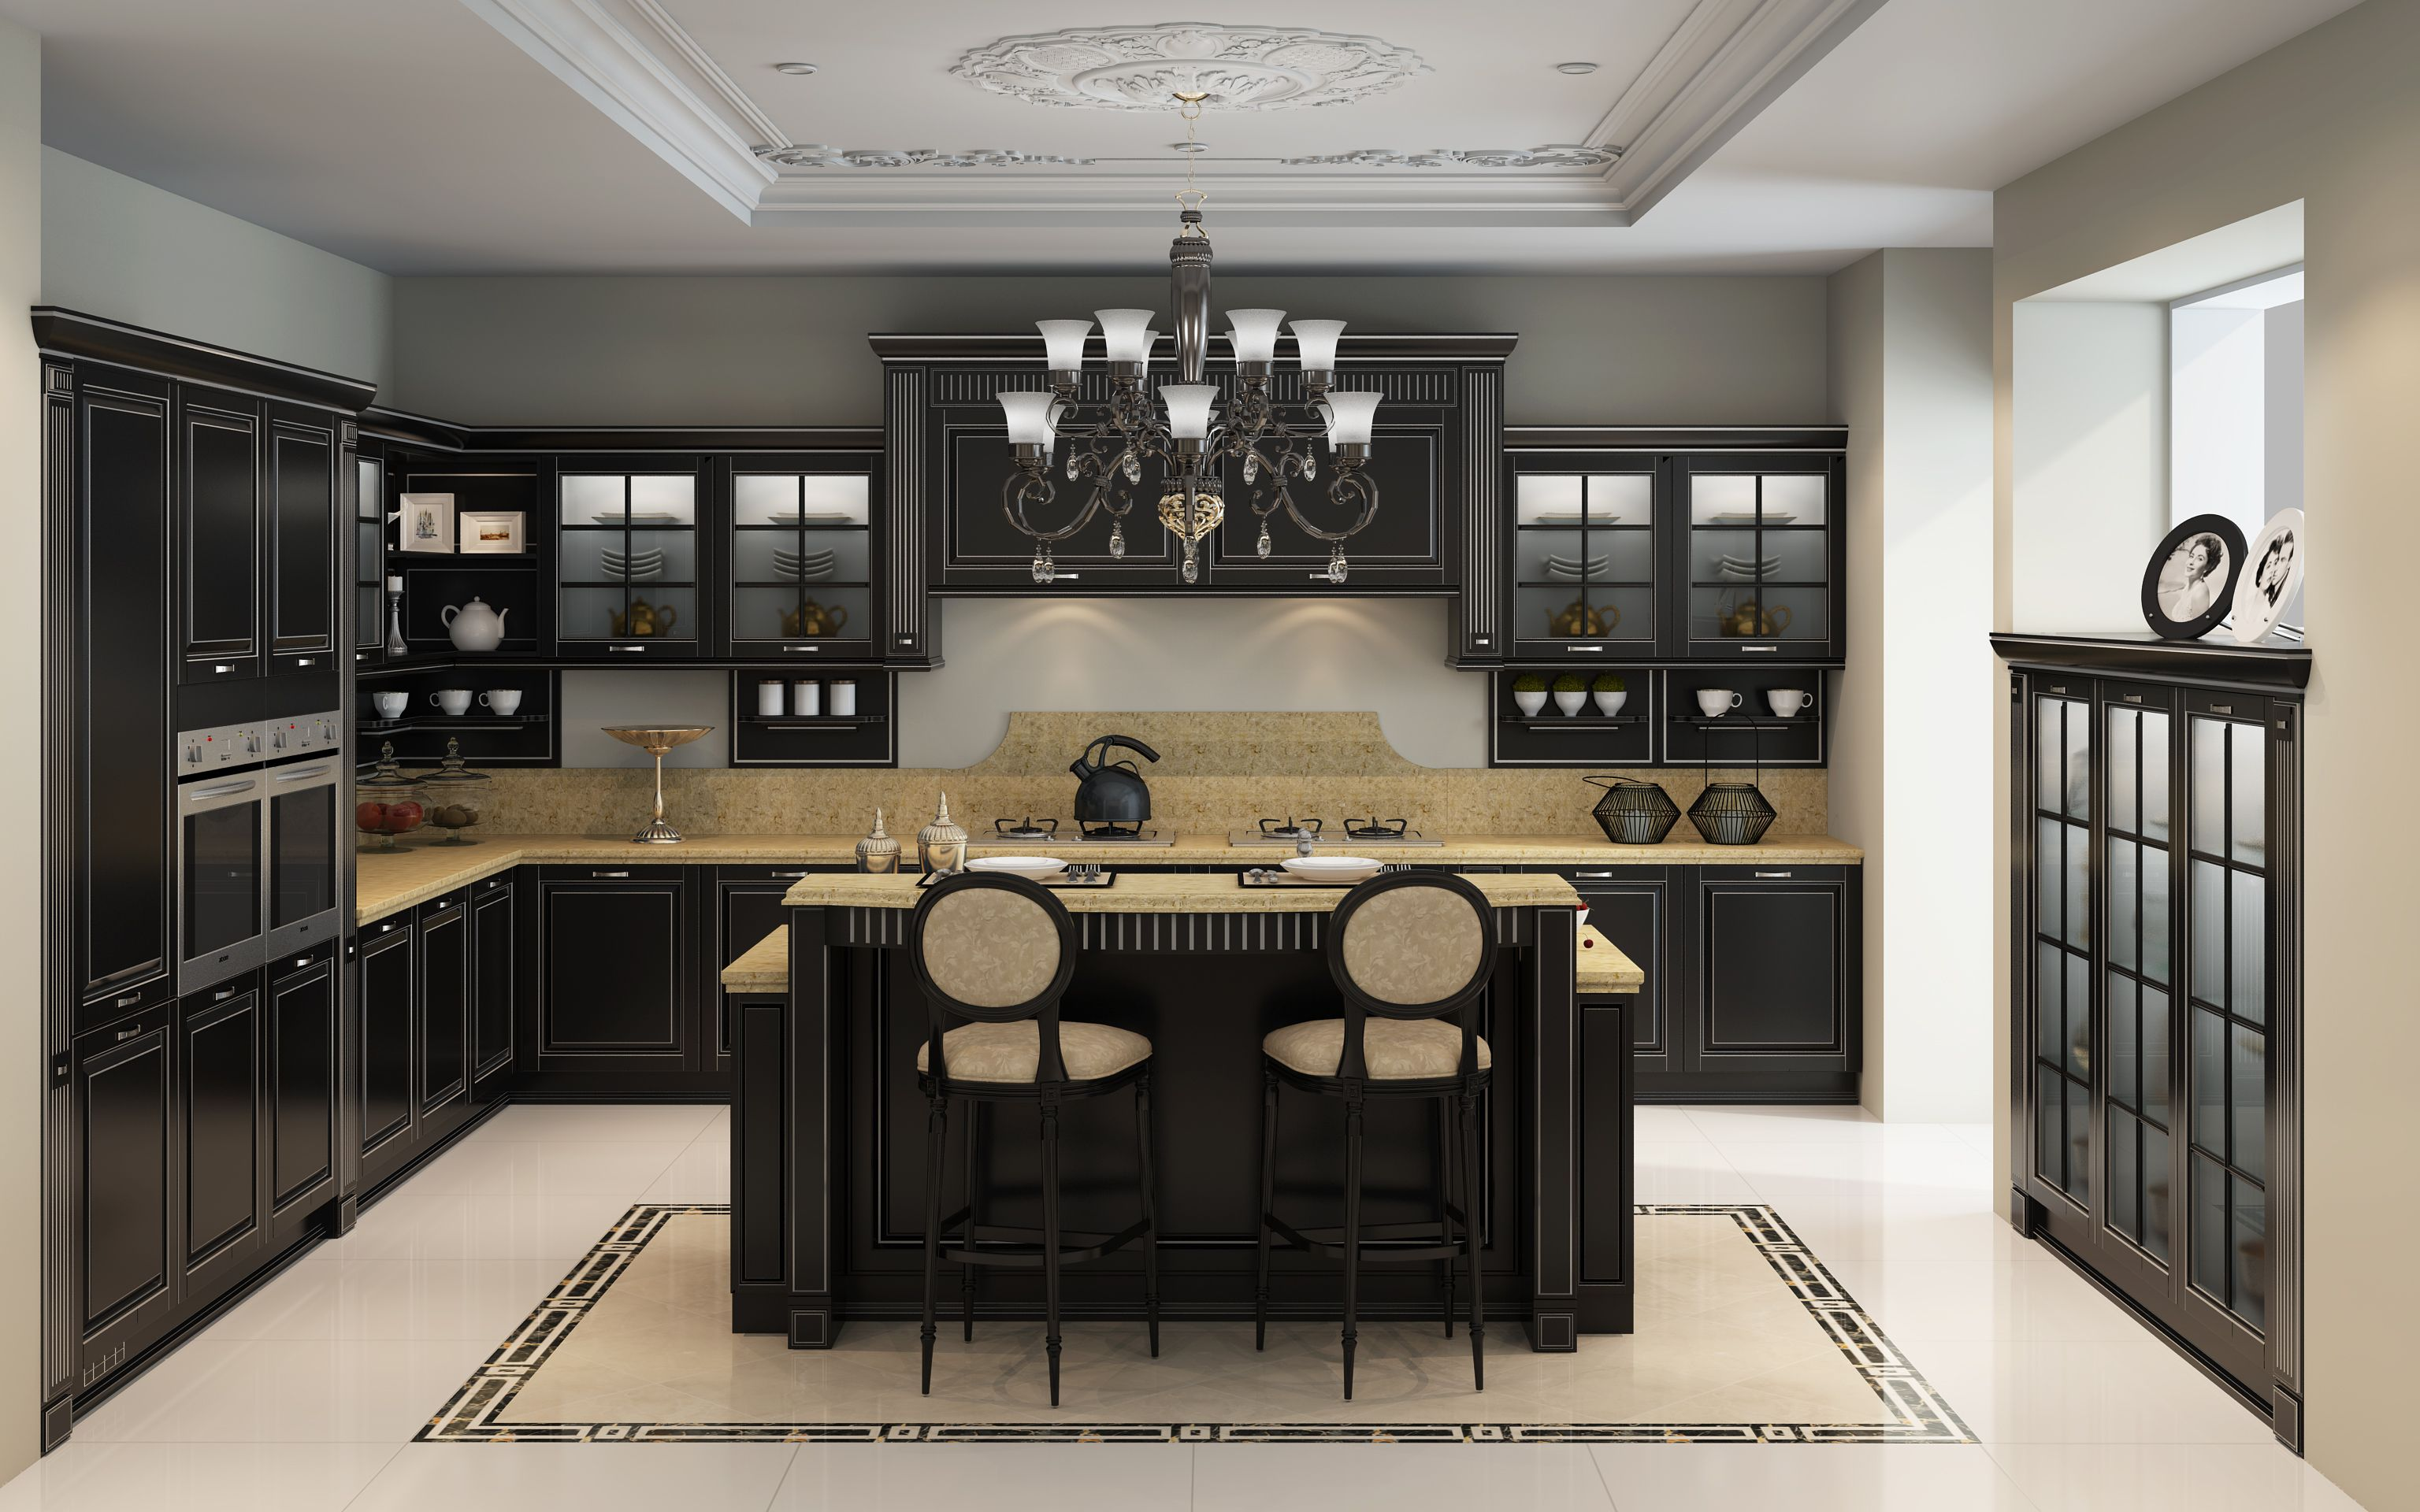 Pin By Zbomcabinets On Guraso Kitchen Design Your Dream House Kitchen Collection Cabinet Manufacturers